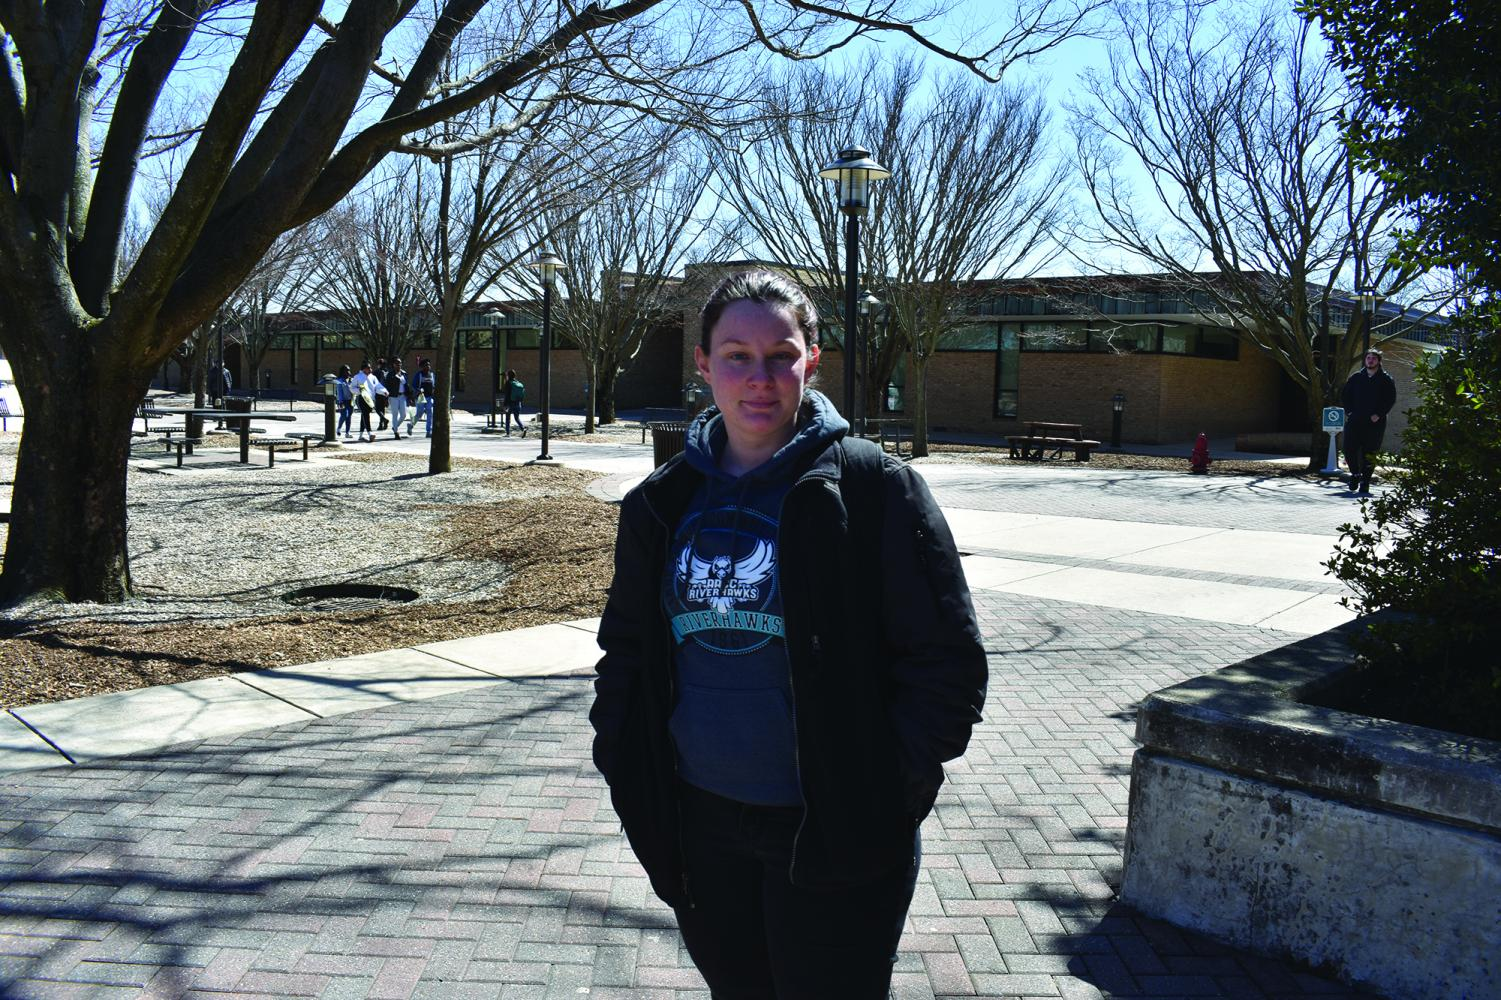 AACC Riverhawks like second-year creative writing student Rani Jenkins show their school spirit by wearing the Riverhawks logo on their clothing.